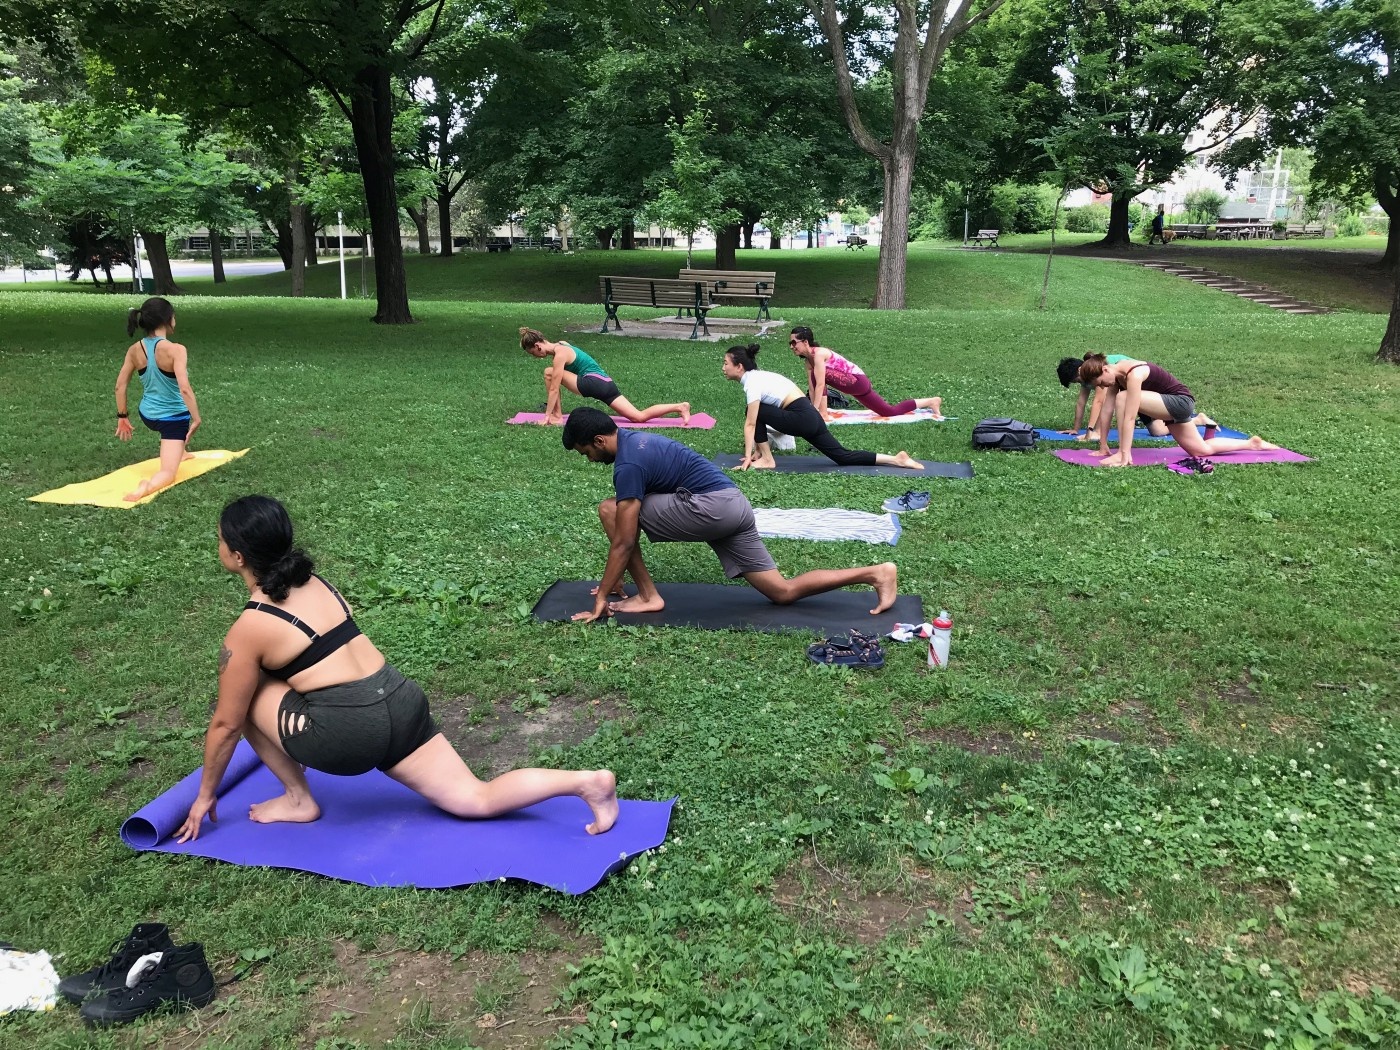 A group of eight people are doing low lunge pose on yoga mats in a park in Toronto. They are in an open, grassy space with trees and benches in the background.